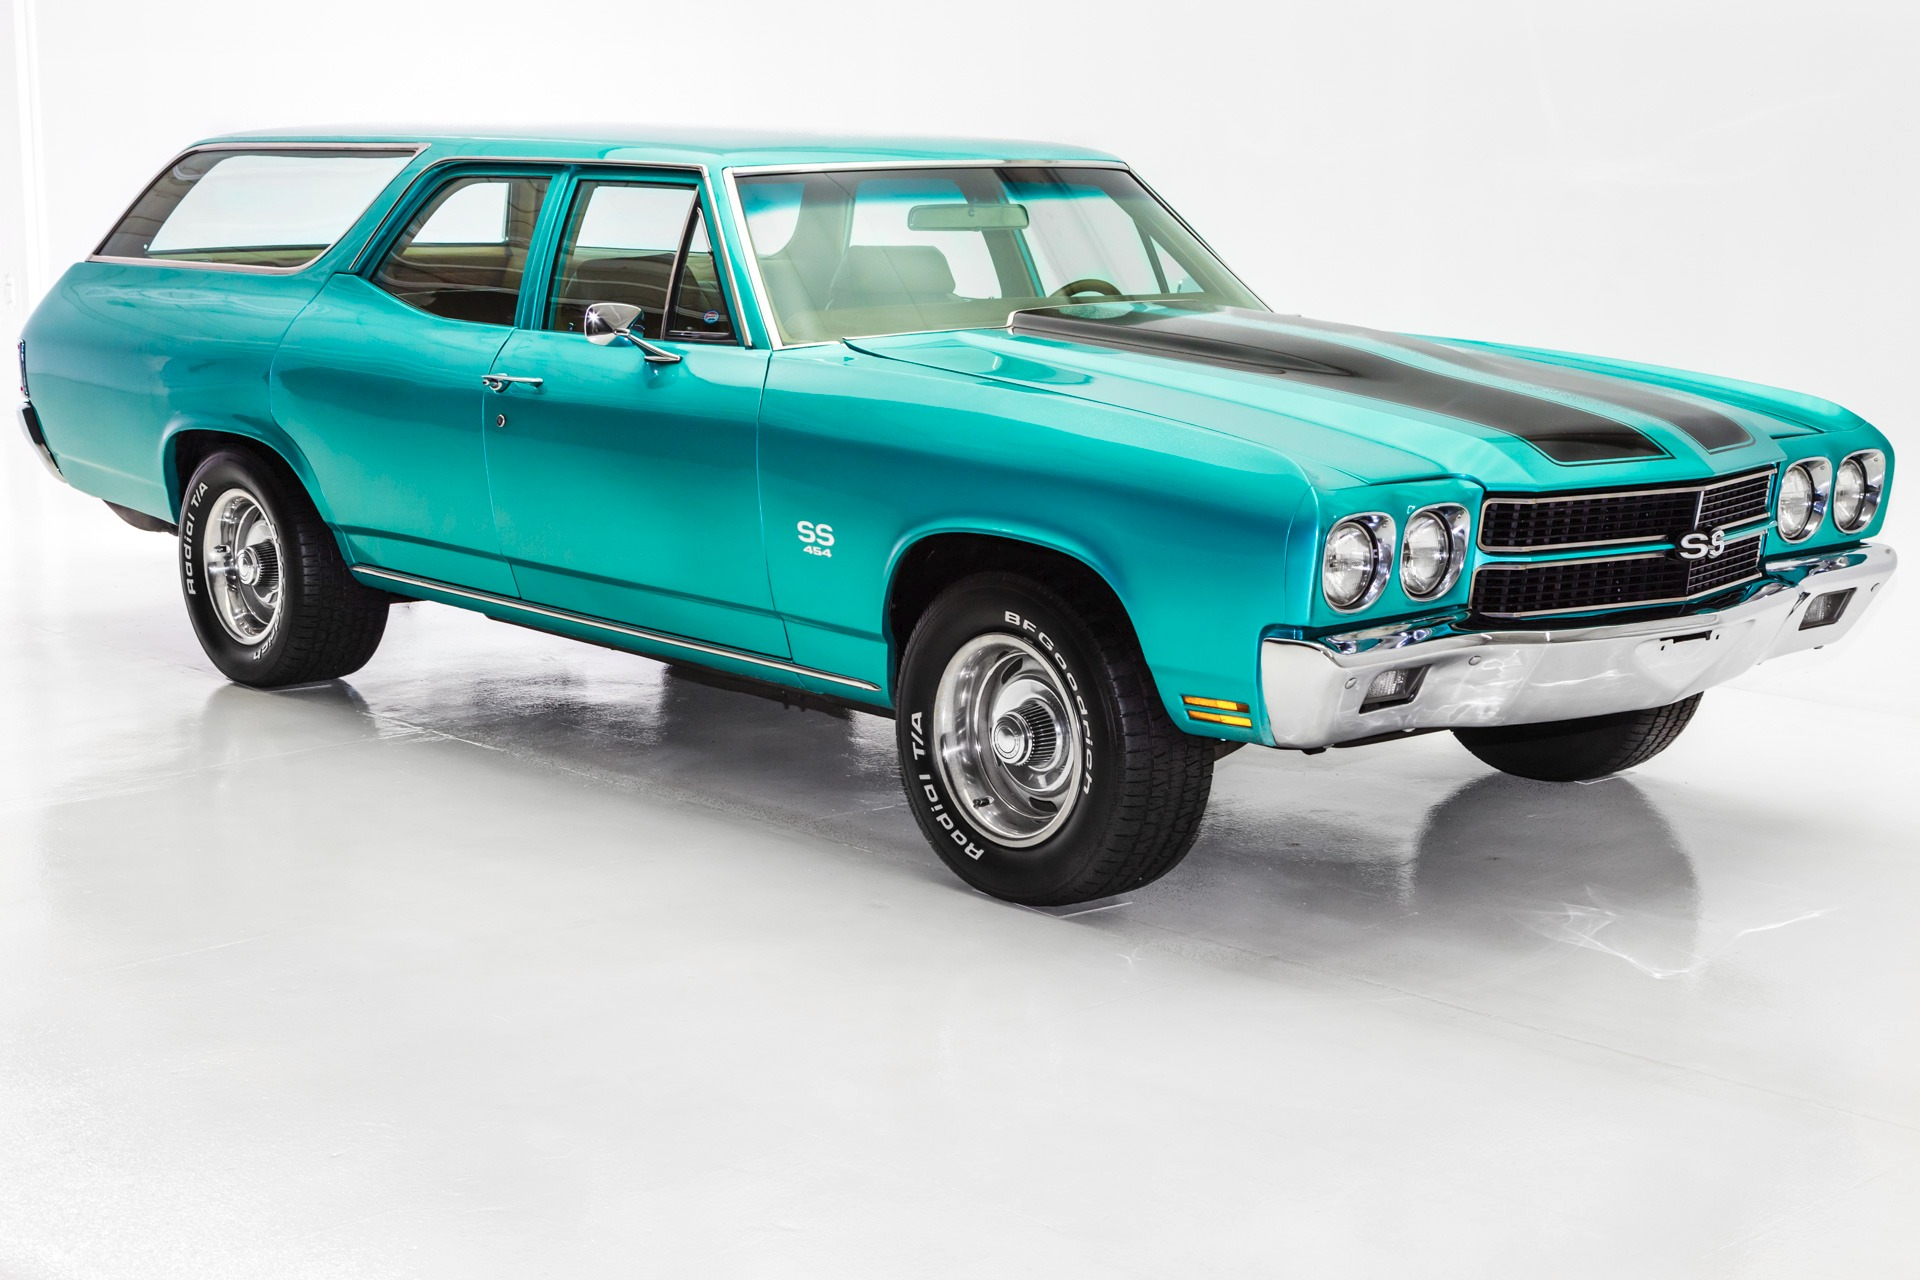 1970 Chevrolet Chevelle Wagon Magazine Car